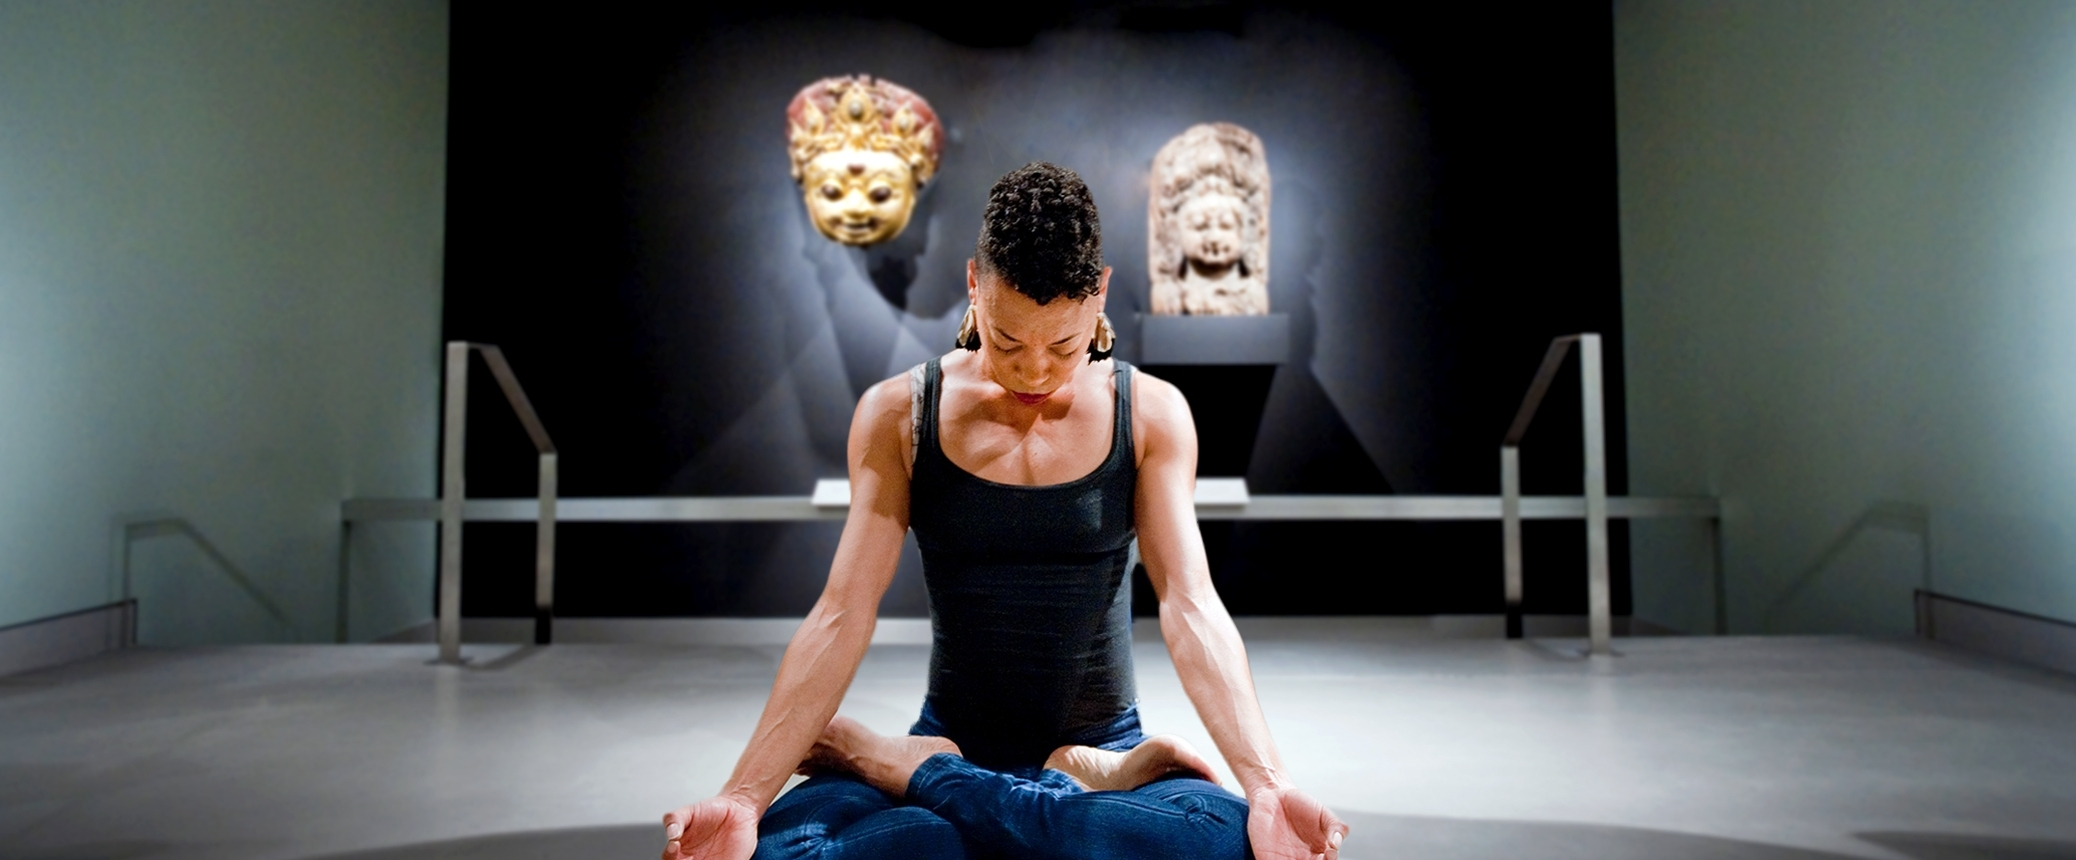 Why is posture so important to meditation? 5